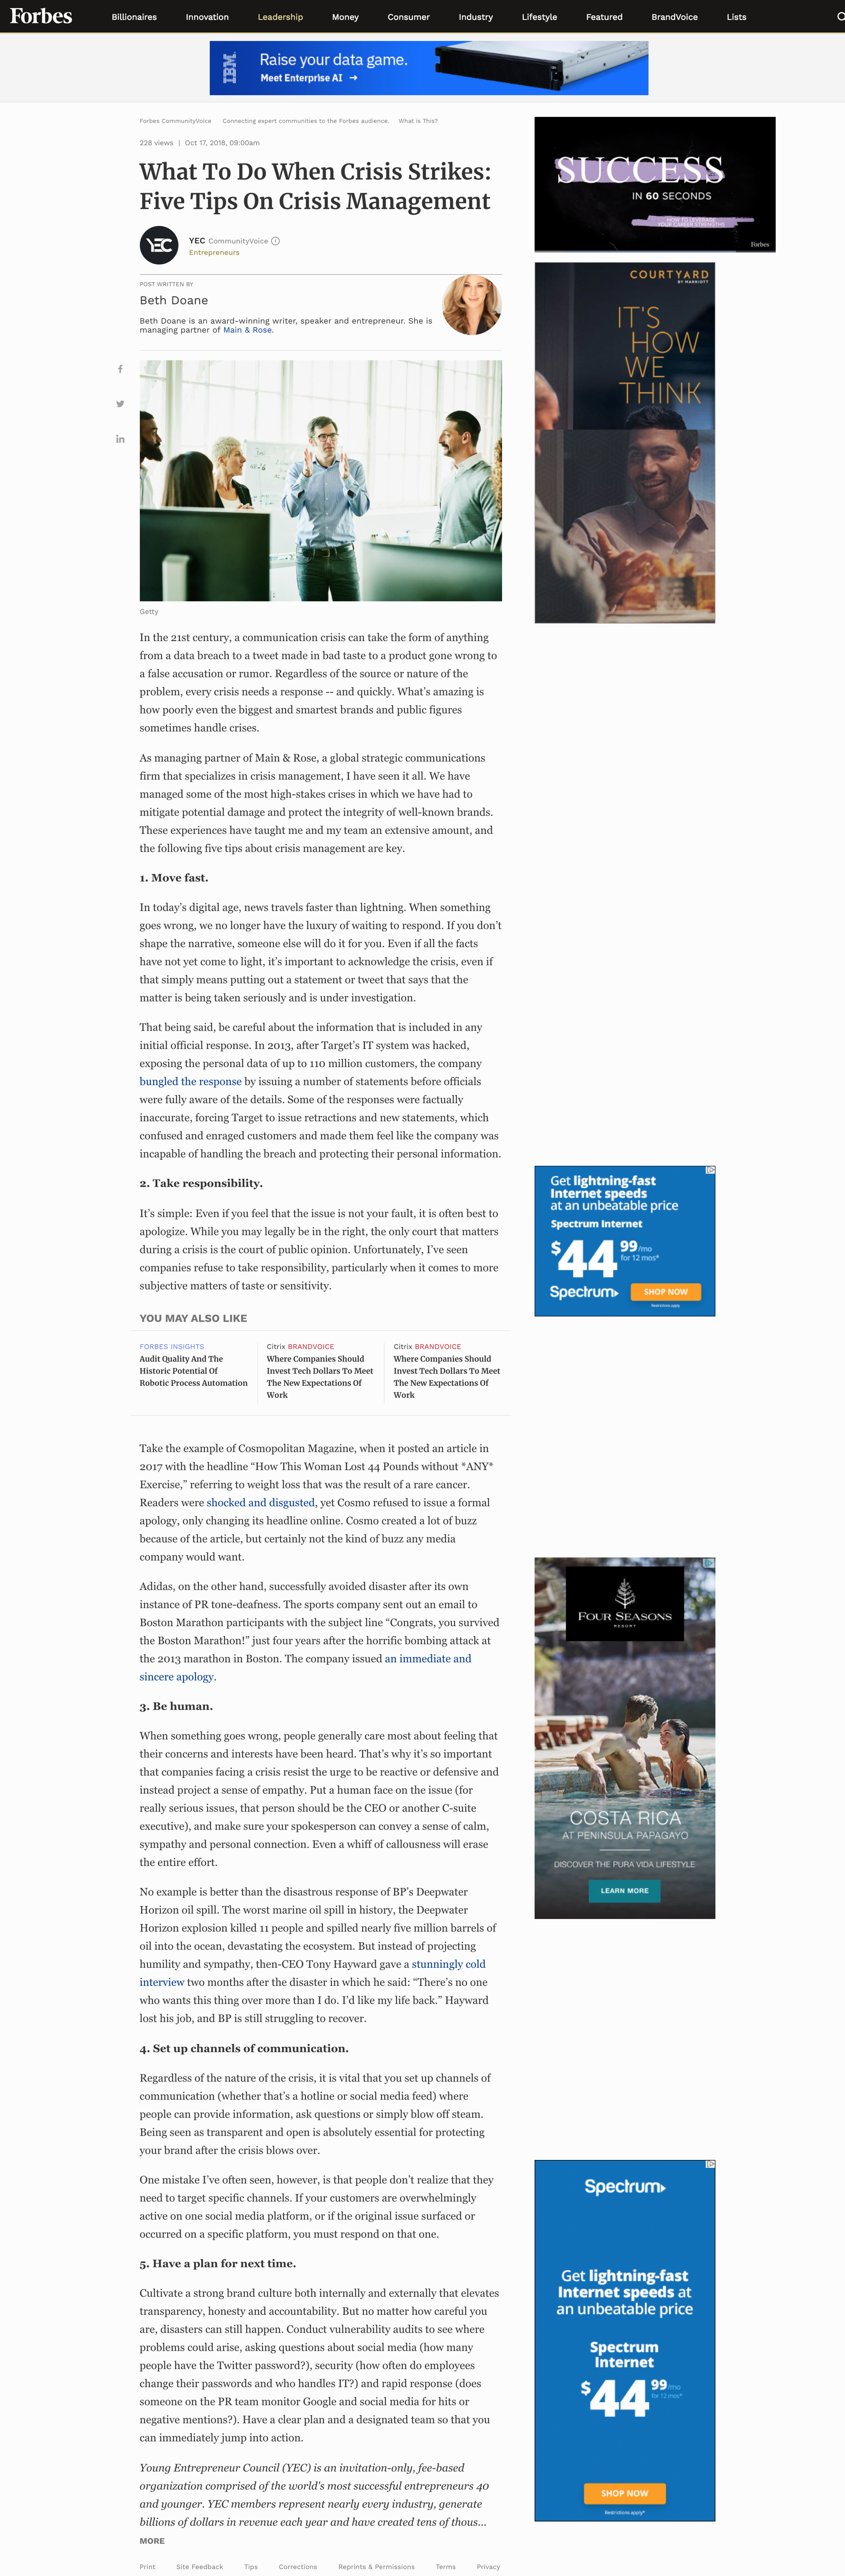 screencapture-forbes-sites-theyec-2018-10-17-what-to-do-when-crisis-strikes-five-tips-on-crisis-management-2018-10-22-21_24_35.png